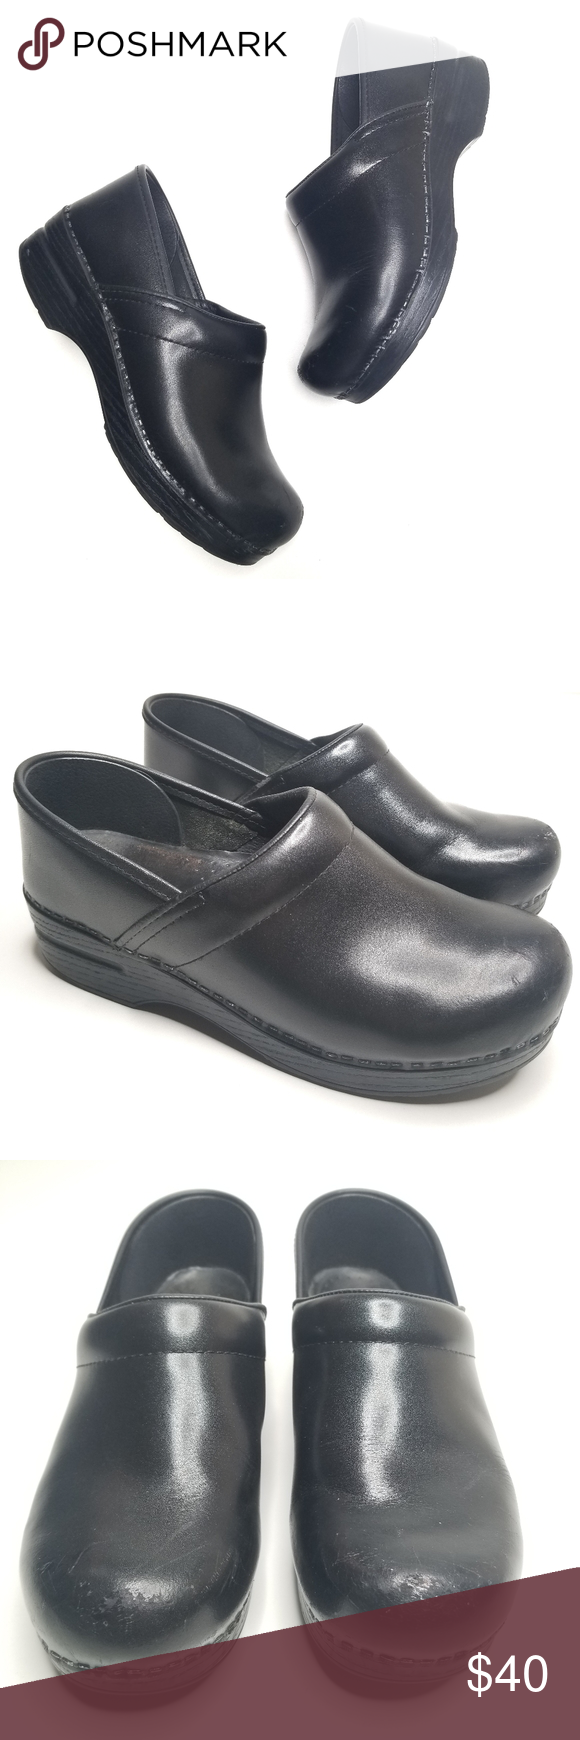 Dansko Black Classic Comfort Cloggs 38 Dansko Black Classic Comfort Cloggs 38 Gently preowned condition, please see photos! Genuine leather  Perfect for nursing and waitressing.  Thank you for shopping Tamsin's Threads. Dansko Shoes Mules & Clogs #thankfulforyou